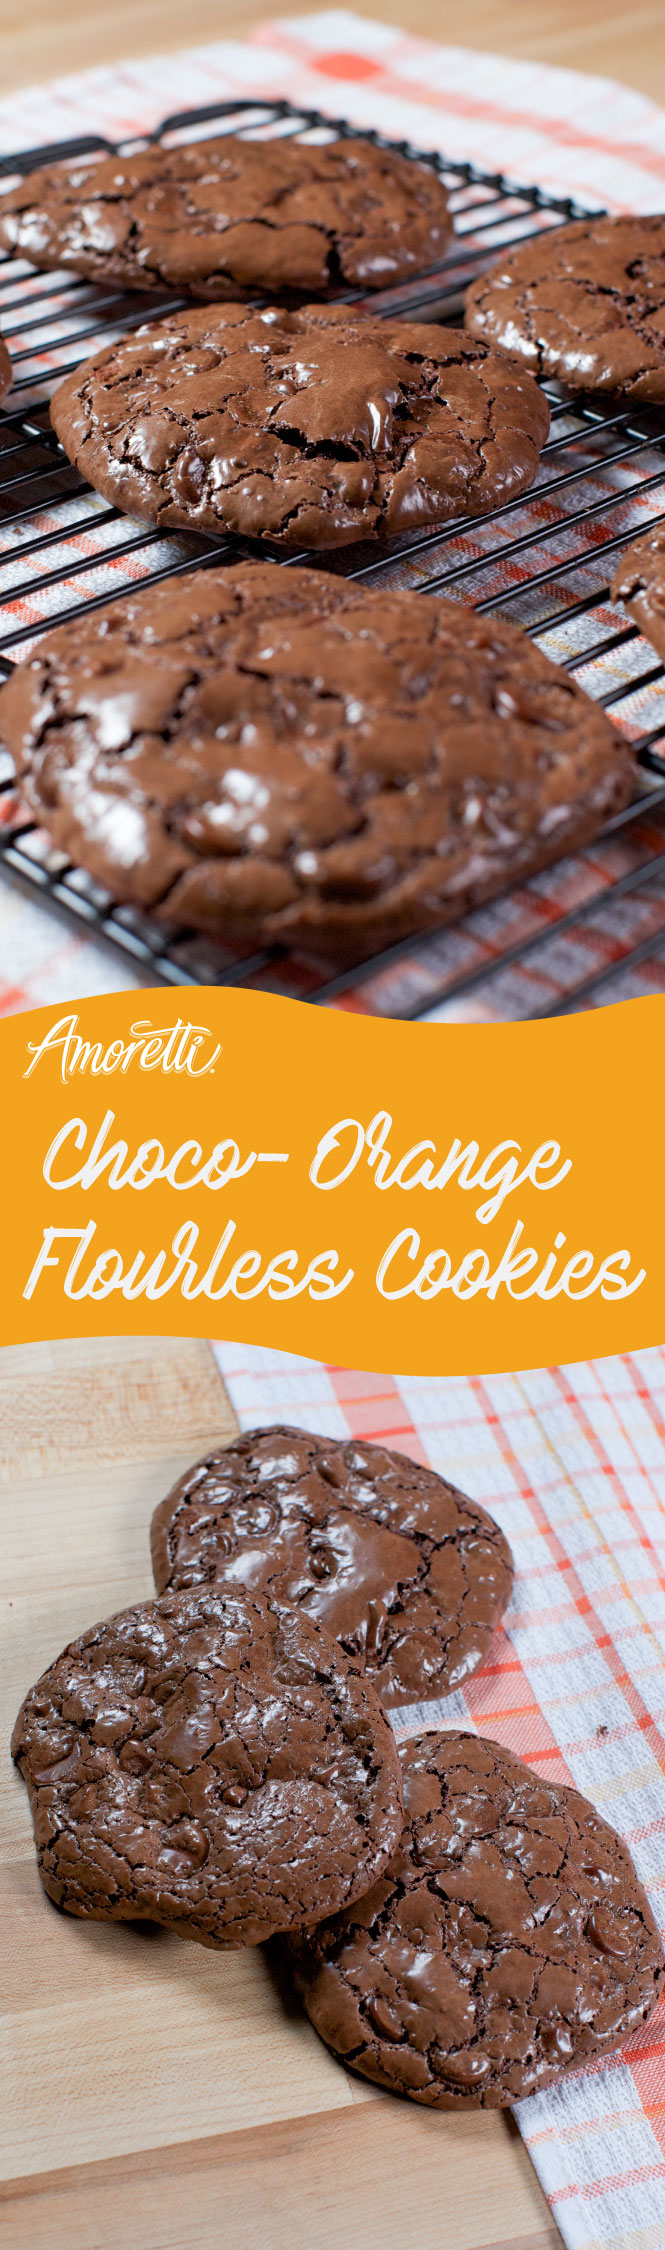 A gluten-free cookie packed with zesty flavor!